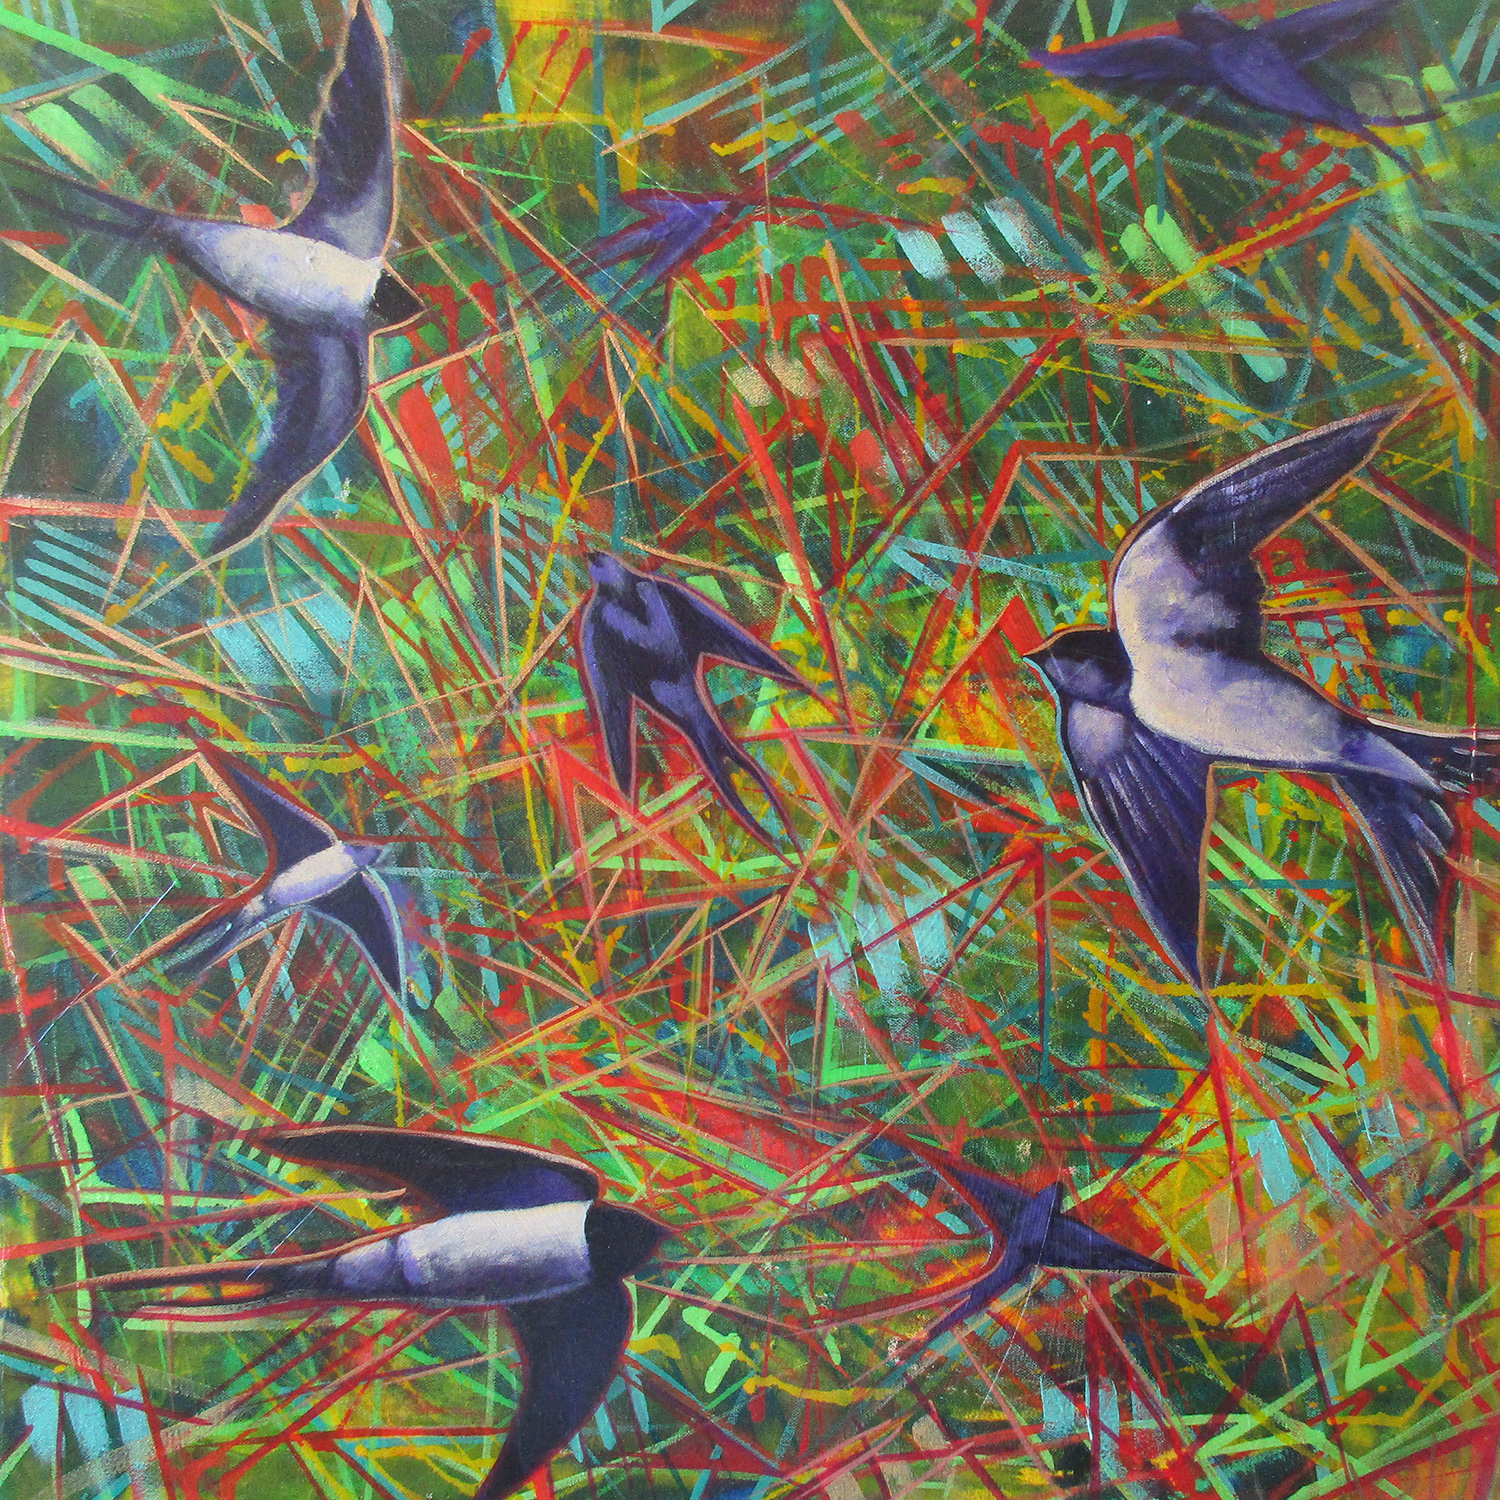 FLIGHT OF THE SWALLOW #1_24X24